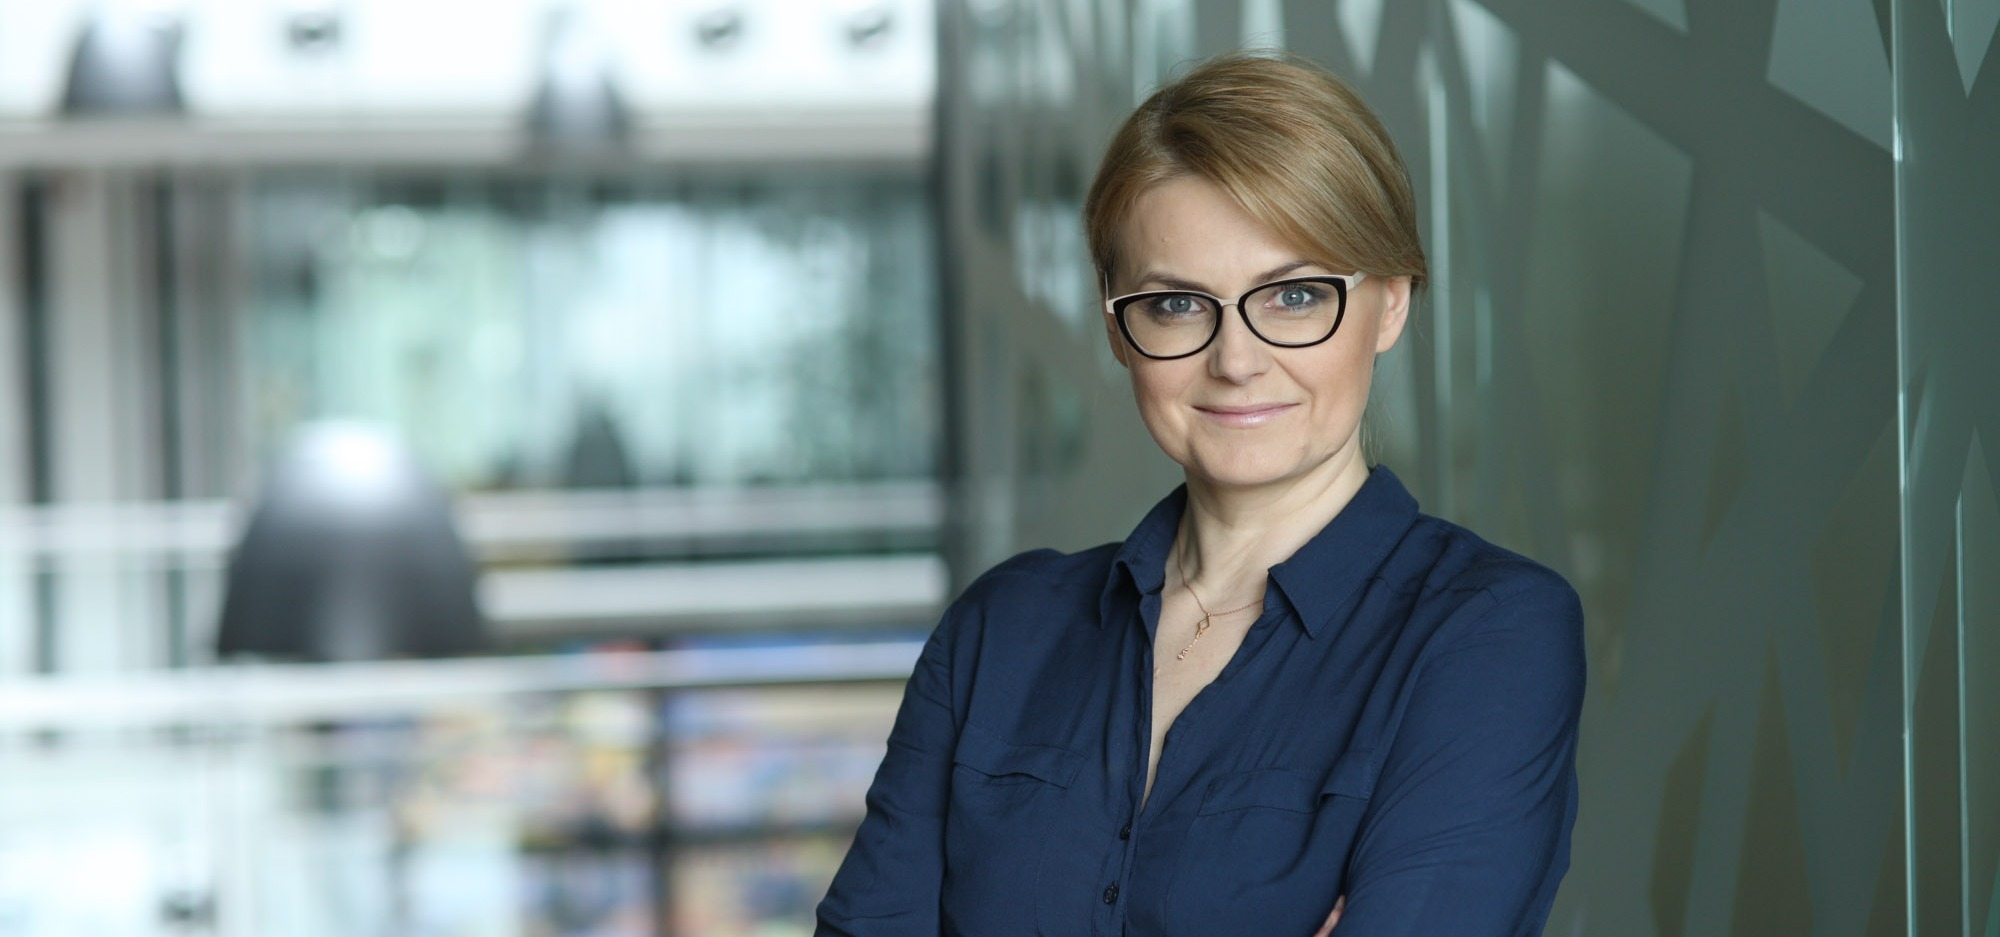 Agnieszka Gotlibowska-Horoszczak becomes Billon's Chairwoman; Anand Phanse takes over as Billon's CFO